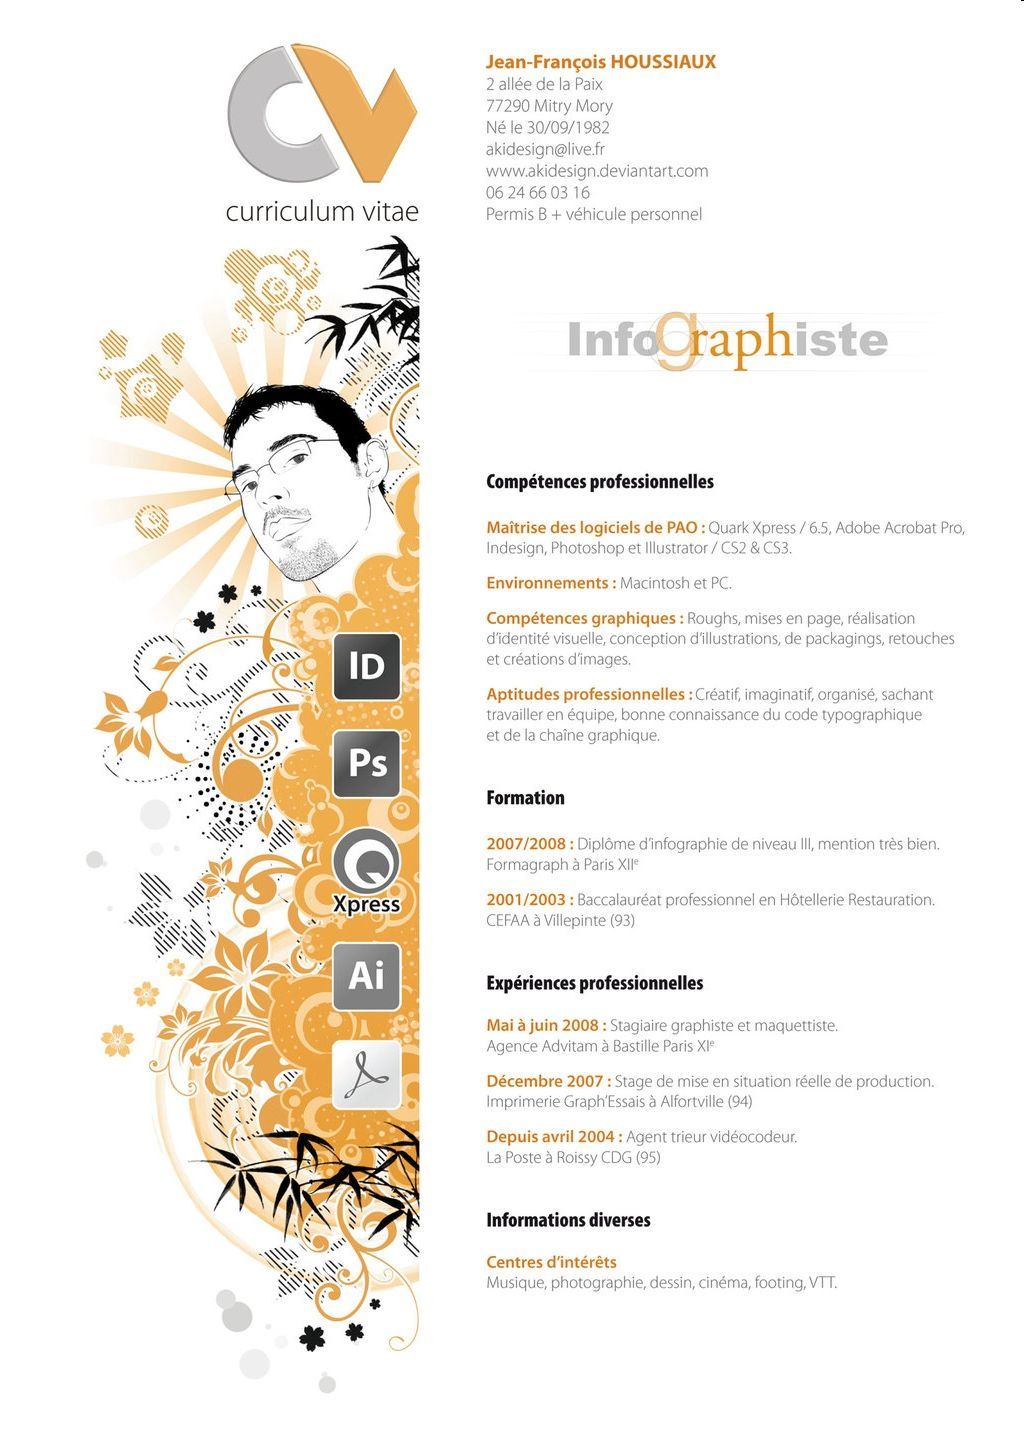 best images about cool resumes creative 17 best images about cool resumes creative infographic resume and creative resume